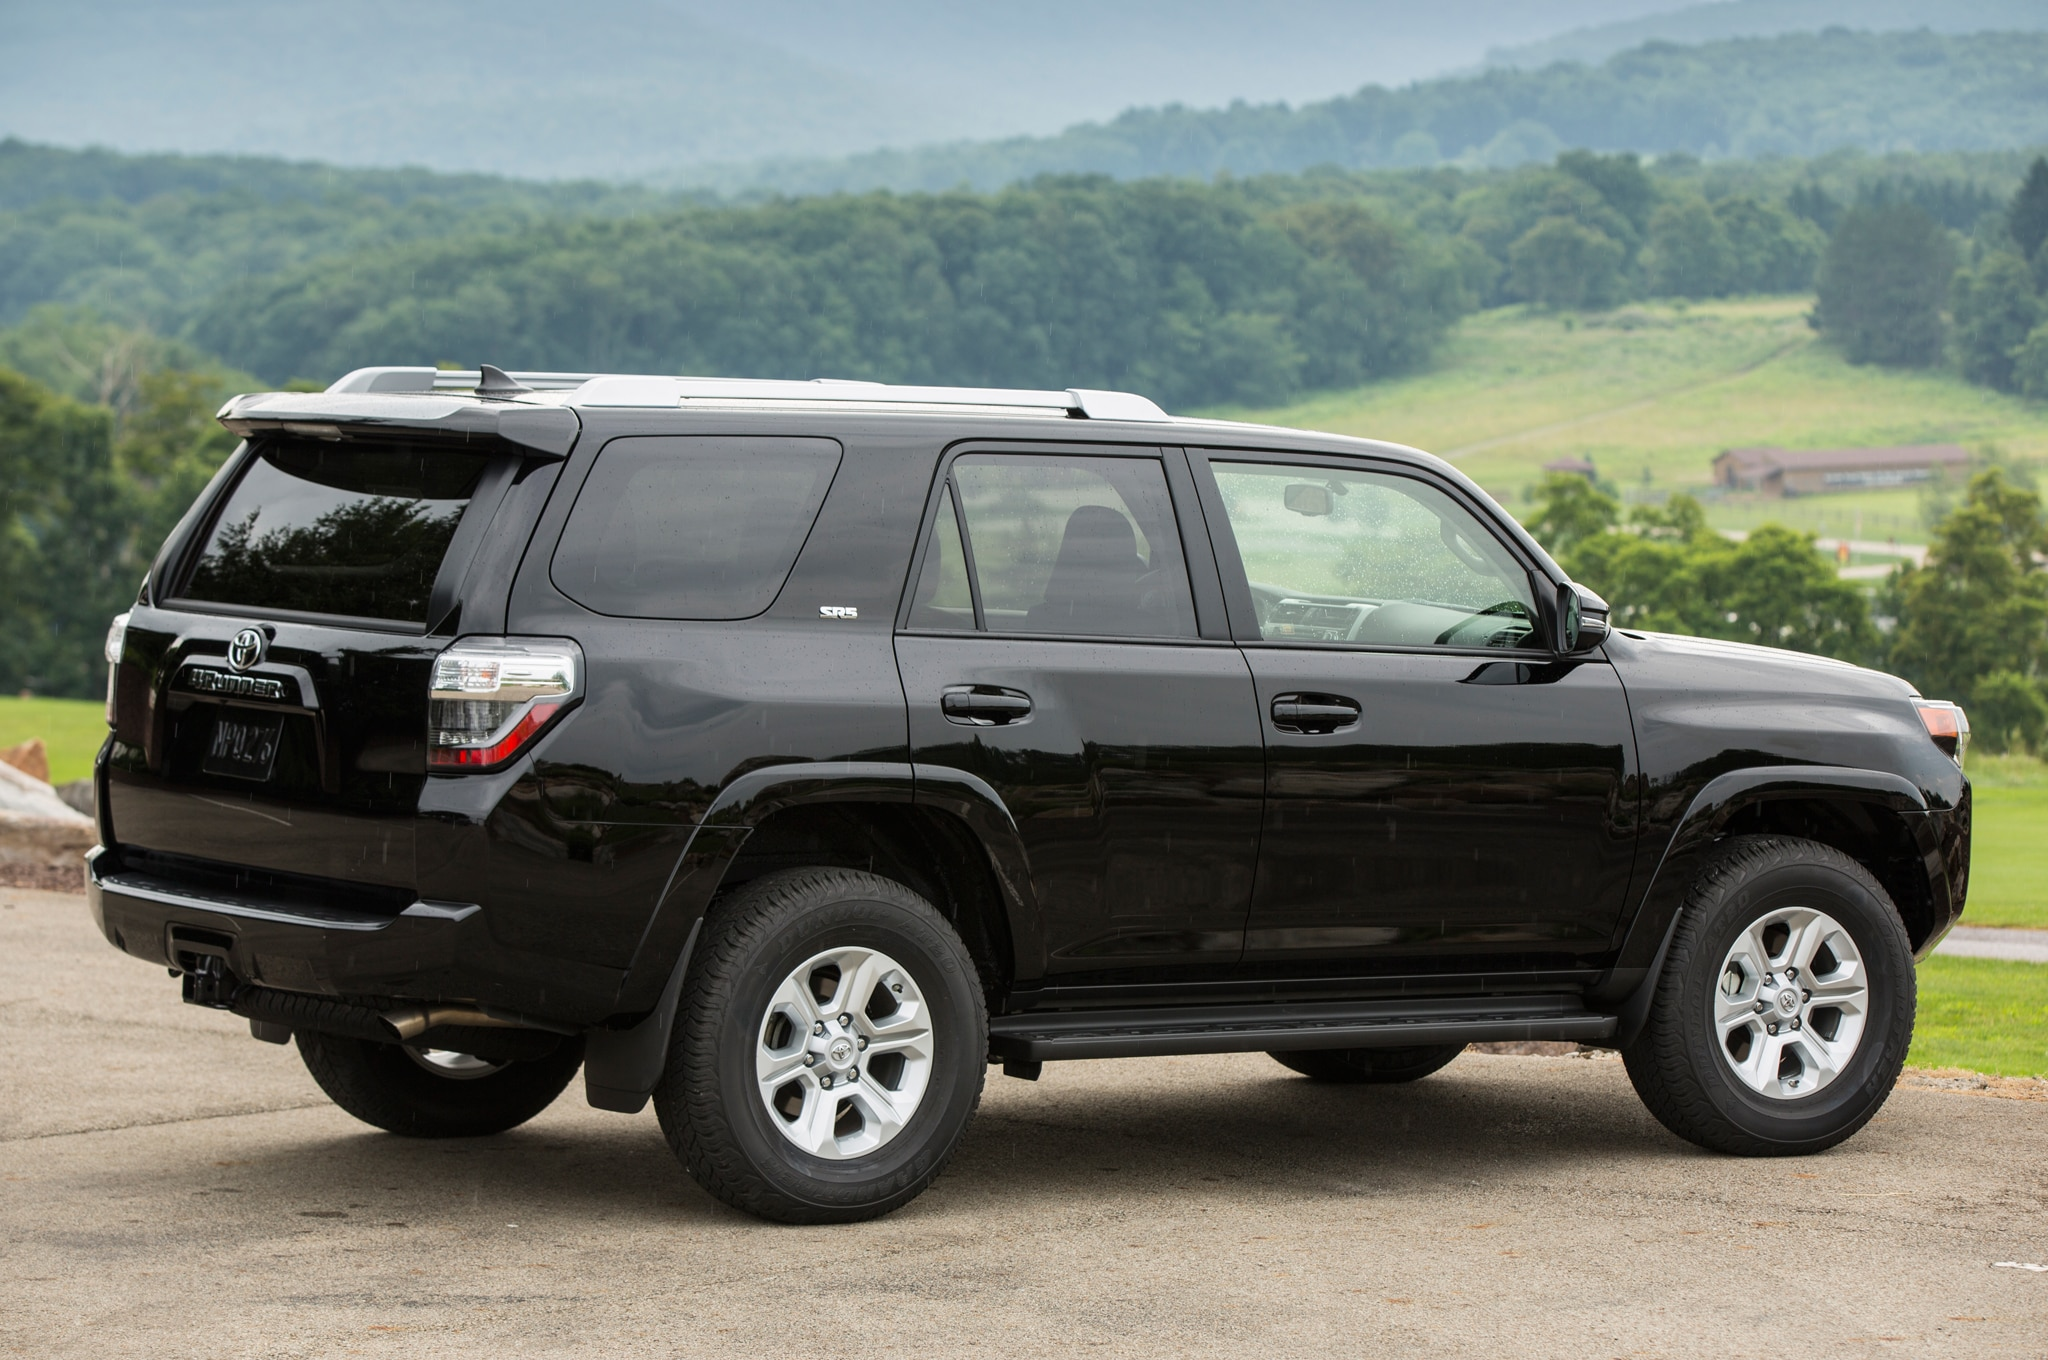 2014 Toyota 4Runner Discounted In Celebration Of 30th ...